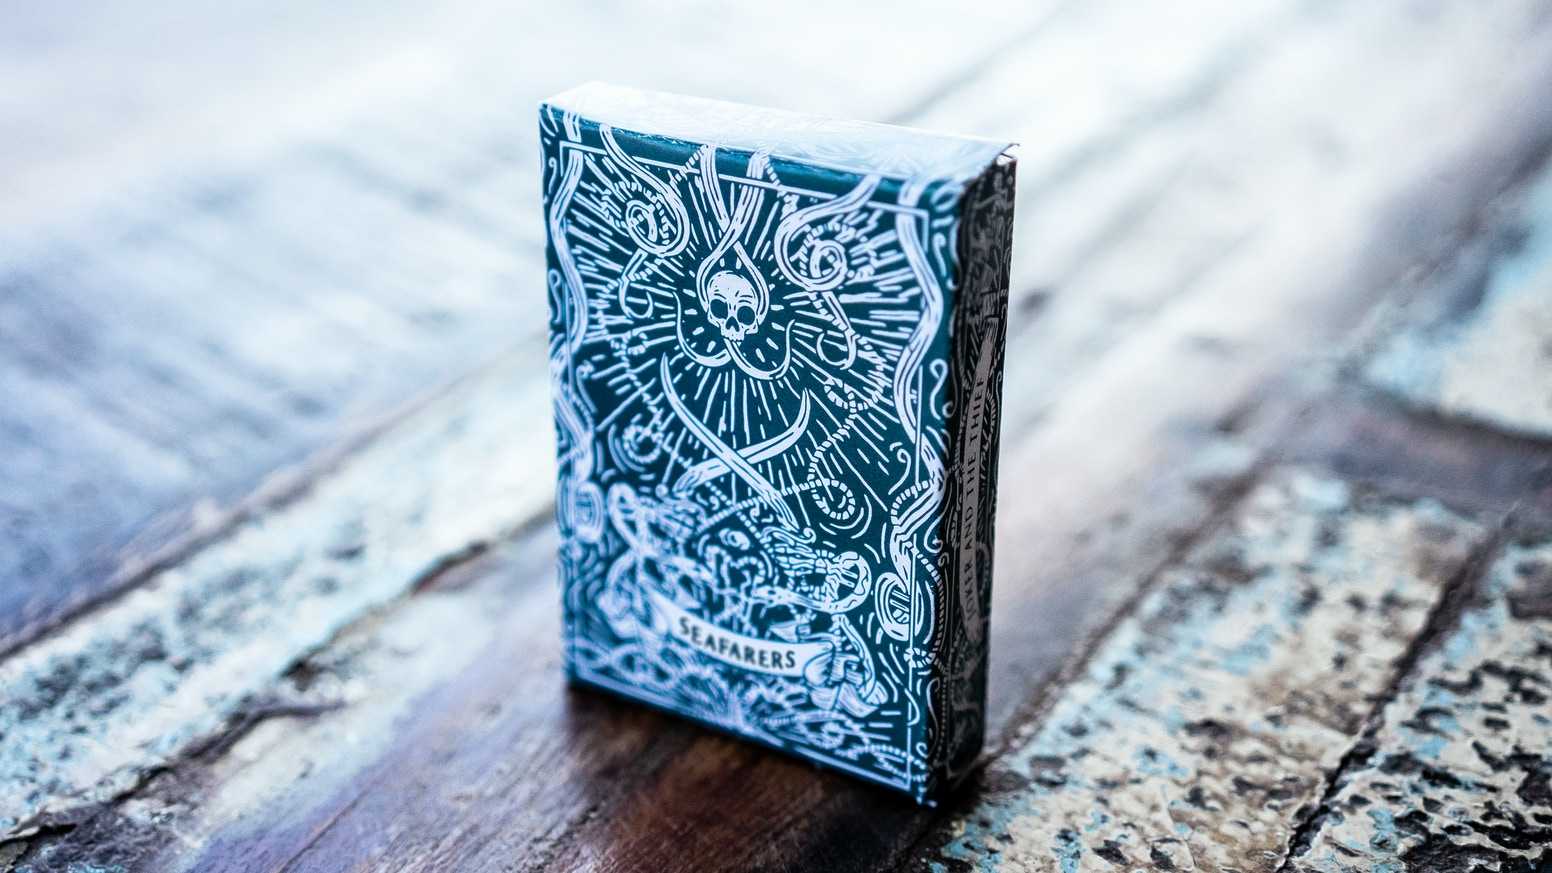 Premium, luxurious and classic nautical playing cards. Designed from the ground up!